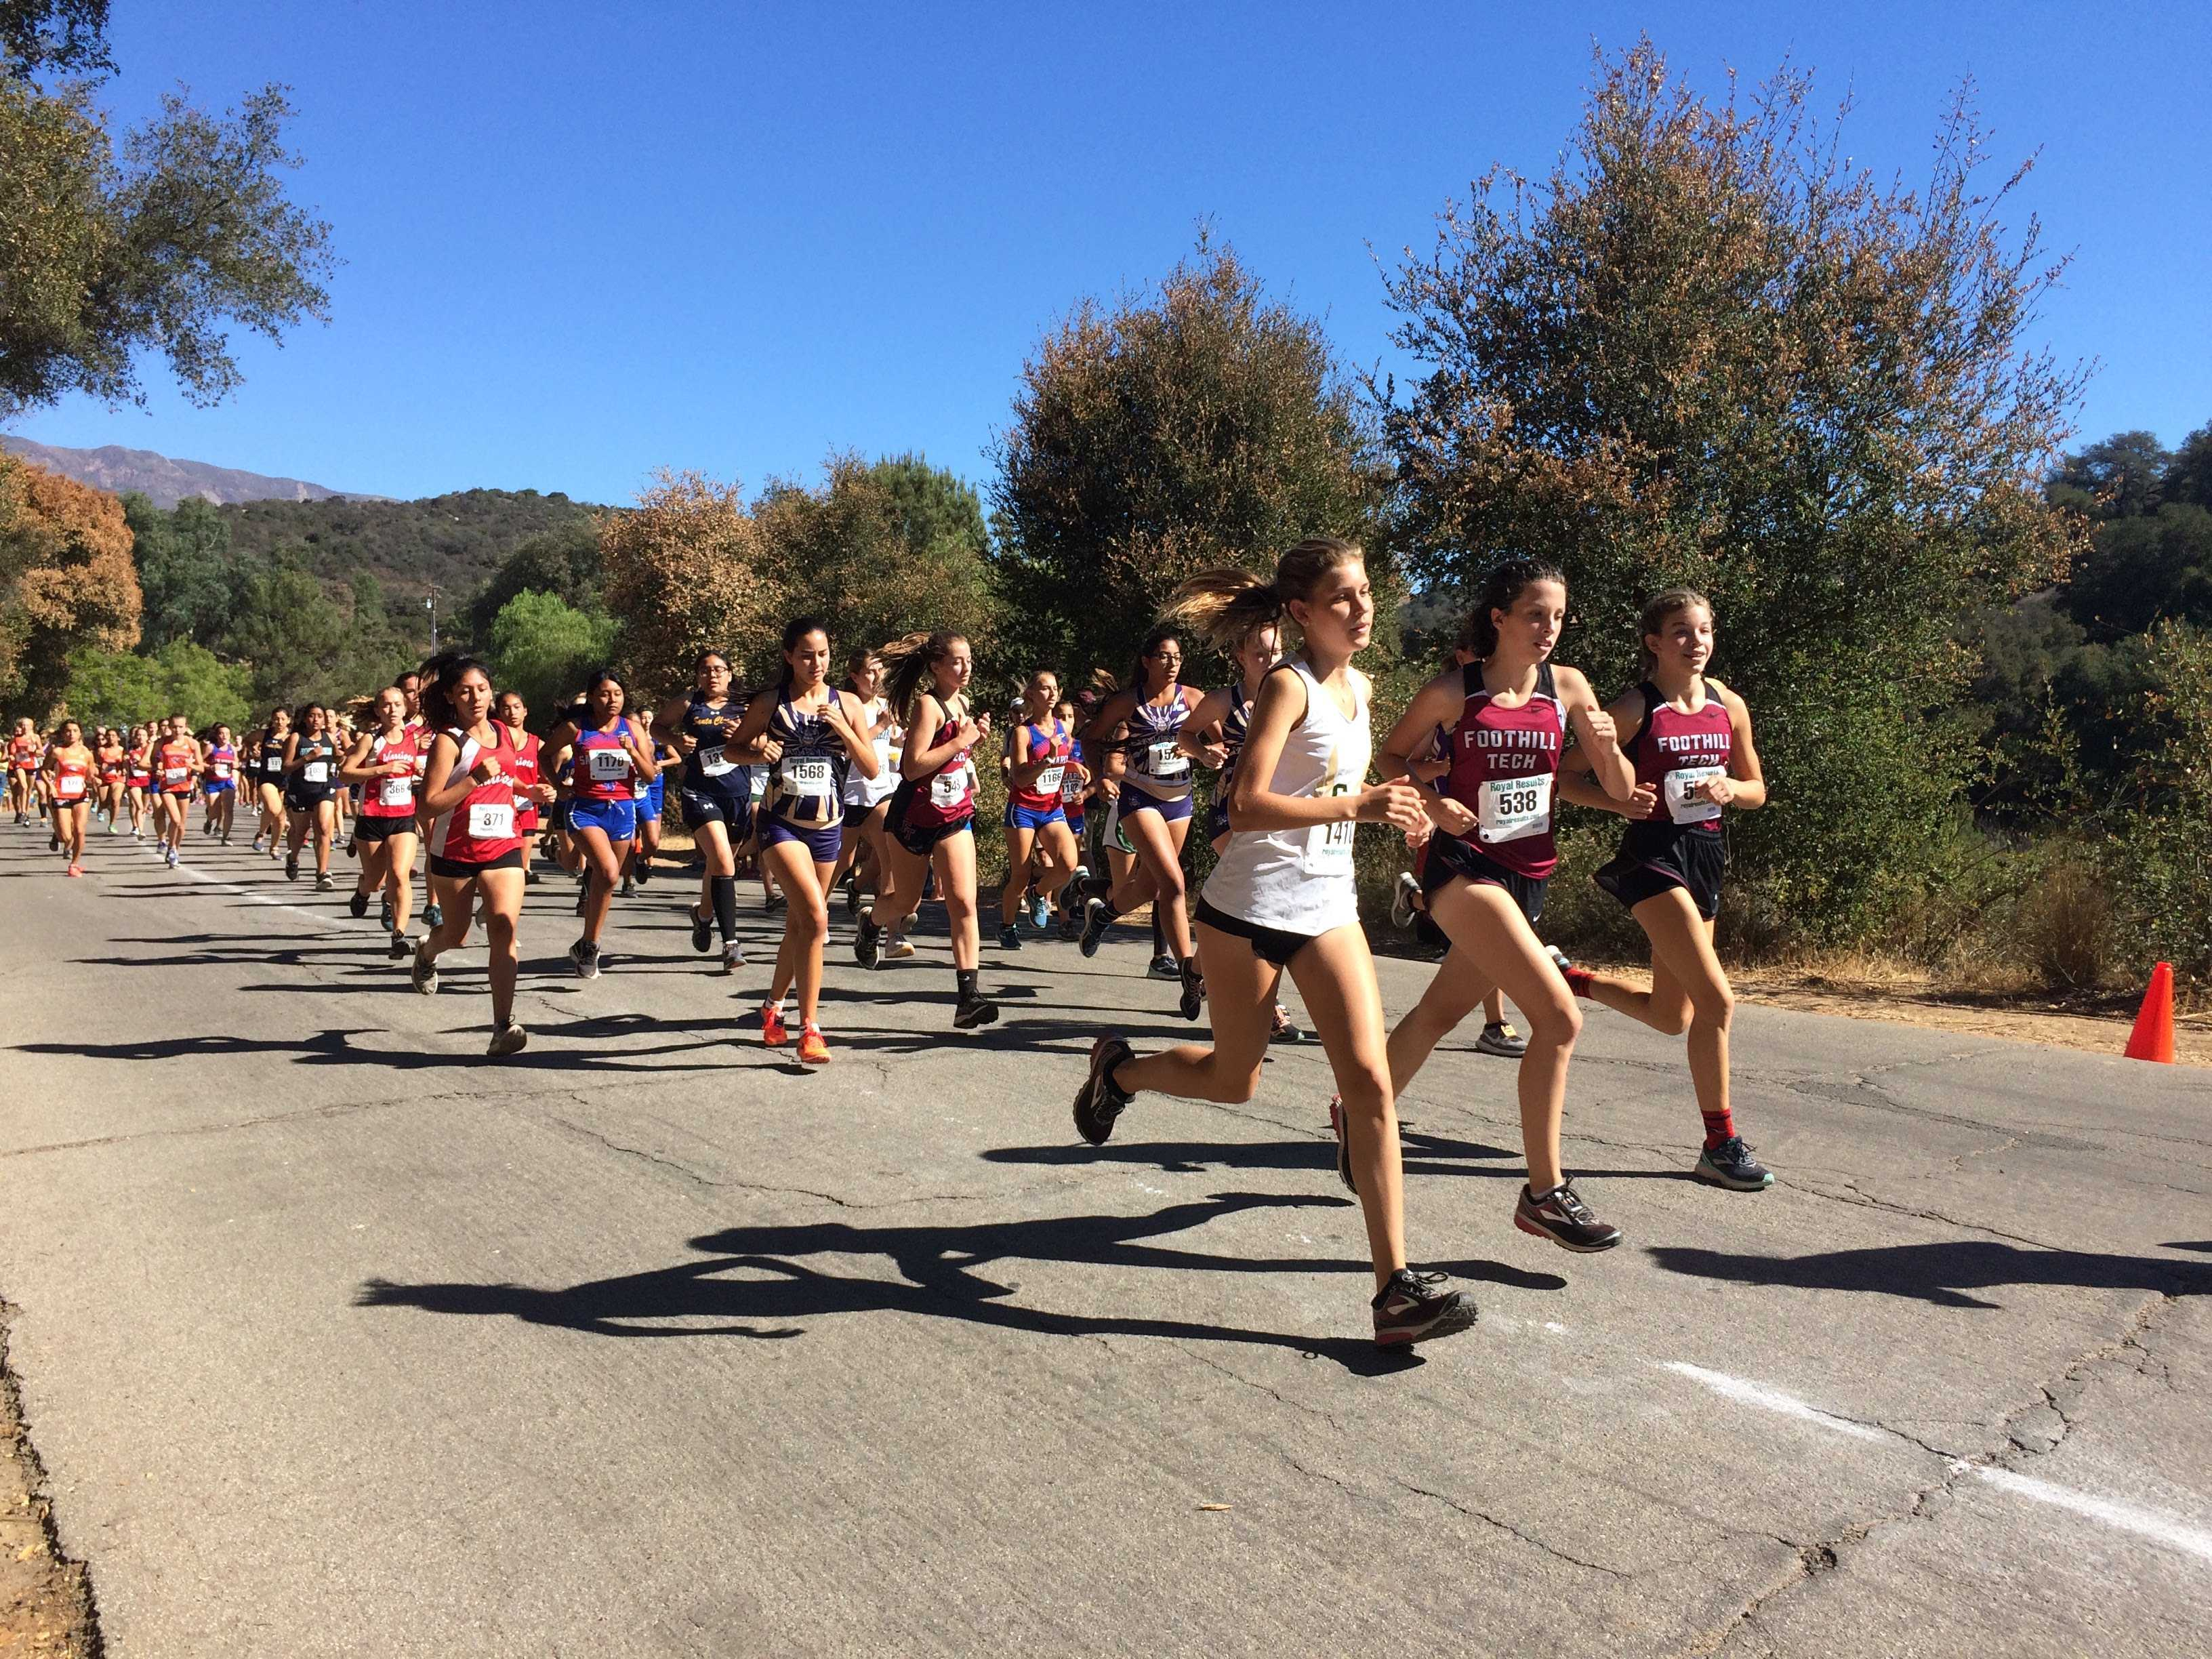 The beginning of a crowded girls' 1.9 mile race. Credit: Dylan Mullaney / The Foothill Dragon Press